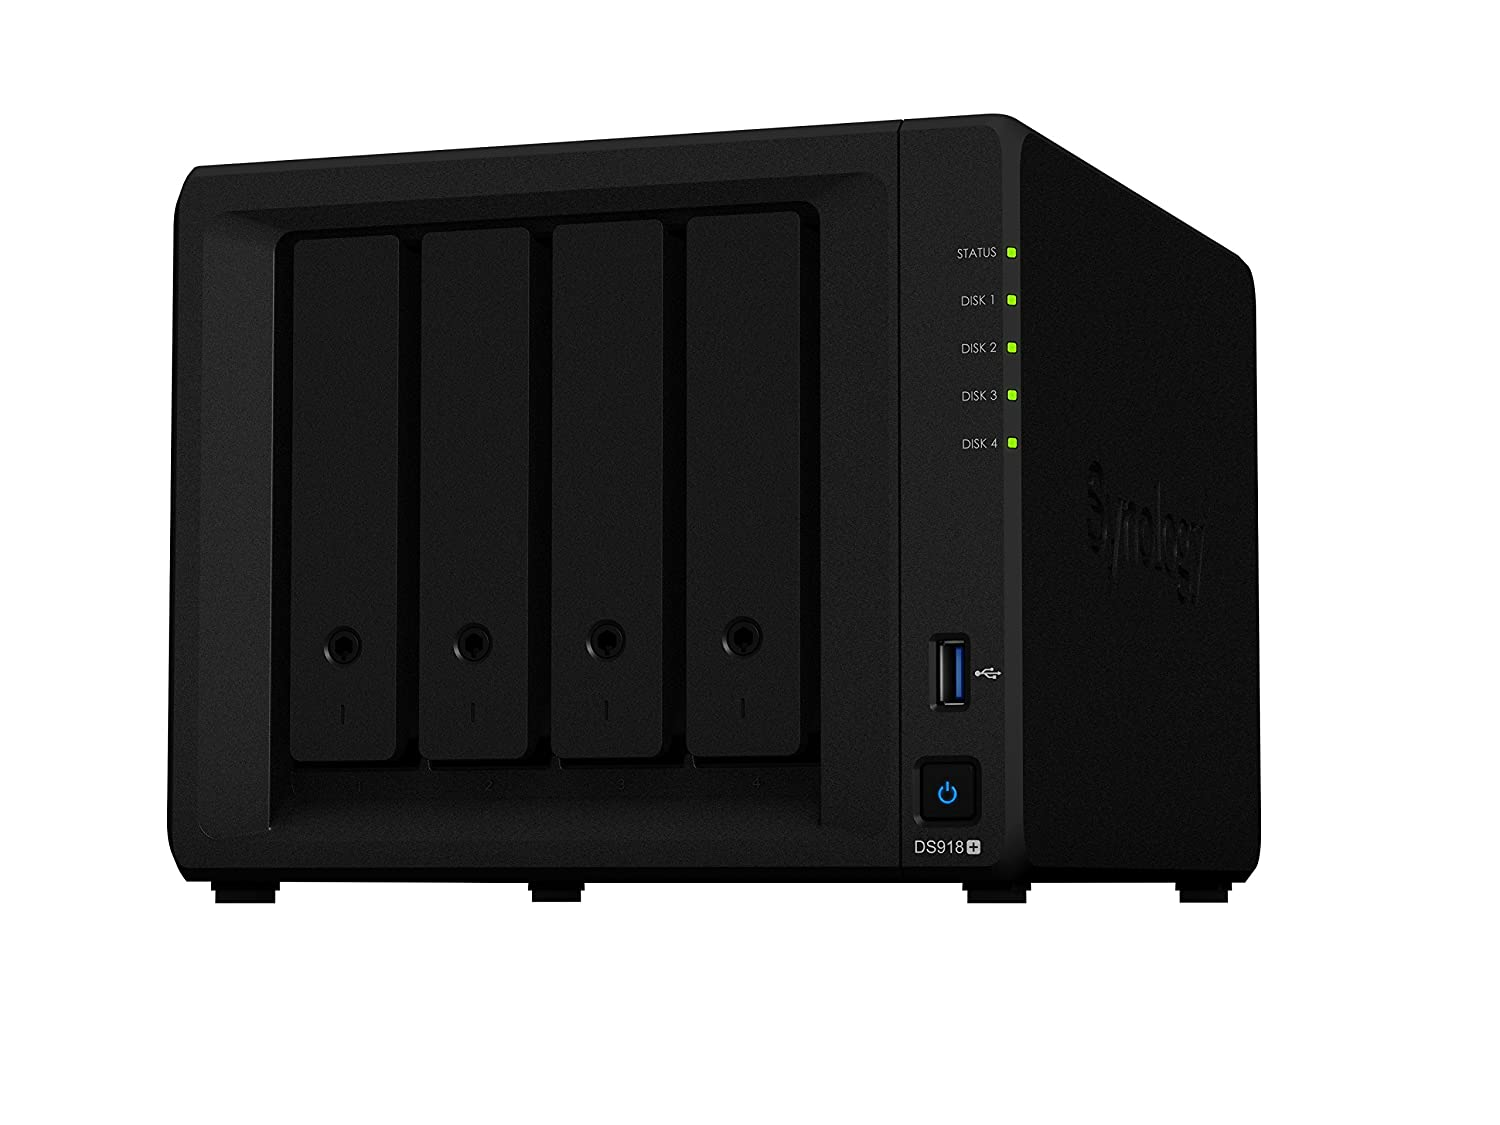 Synology DS918+ 16TB 4 Bay NAS Solució n | Instalado con 4 x 4TB Seagate IrownWolf Drives DS918+/16TB-IW